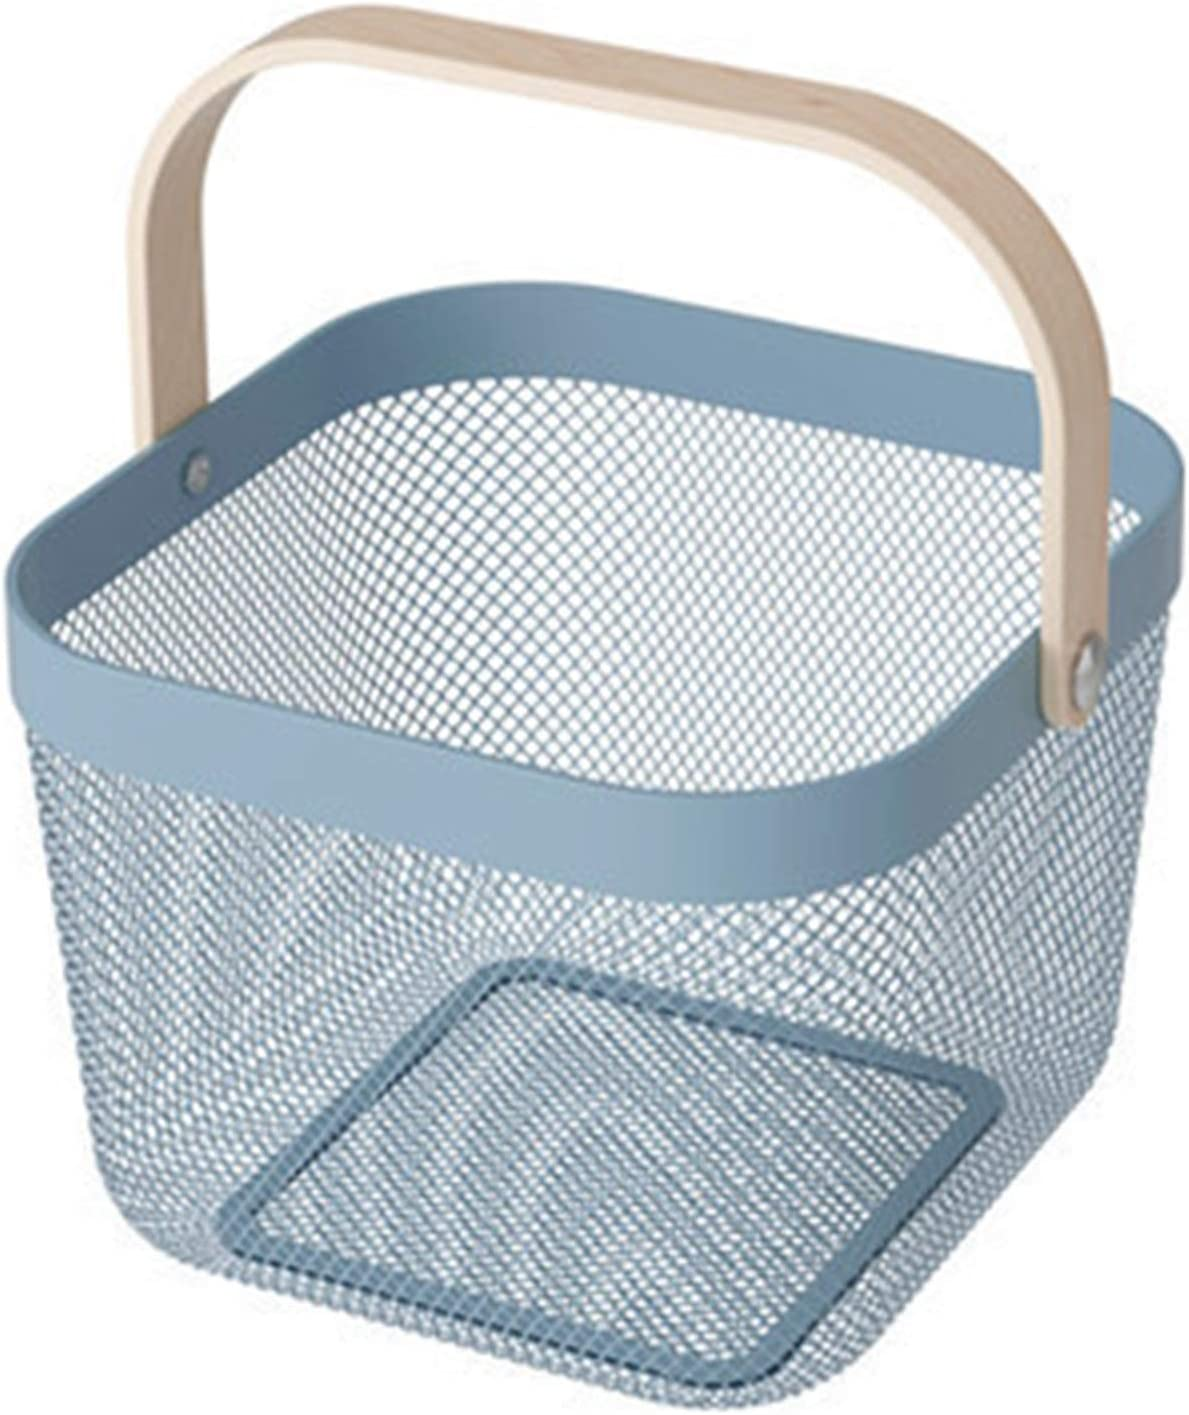 XUANMGE Storage Basket Portable Vegetable Fruit with Popular shop is the lowest price challenge Bag Manufacturer OFFicial shop